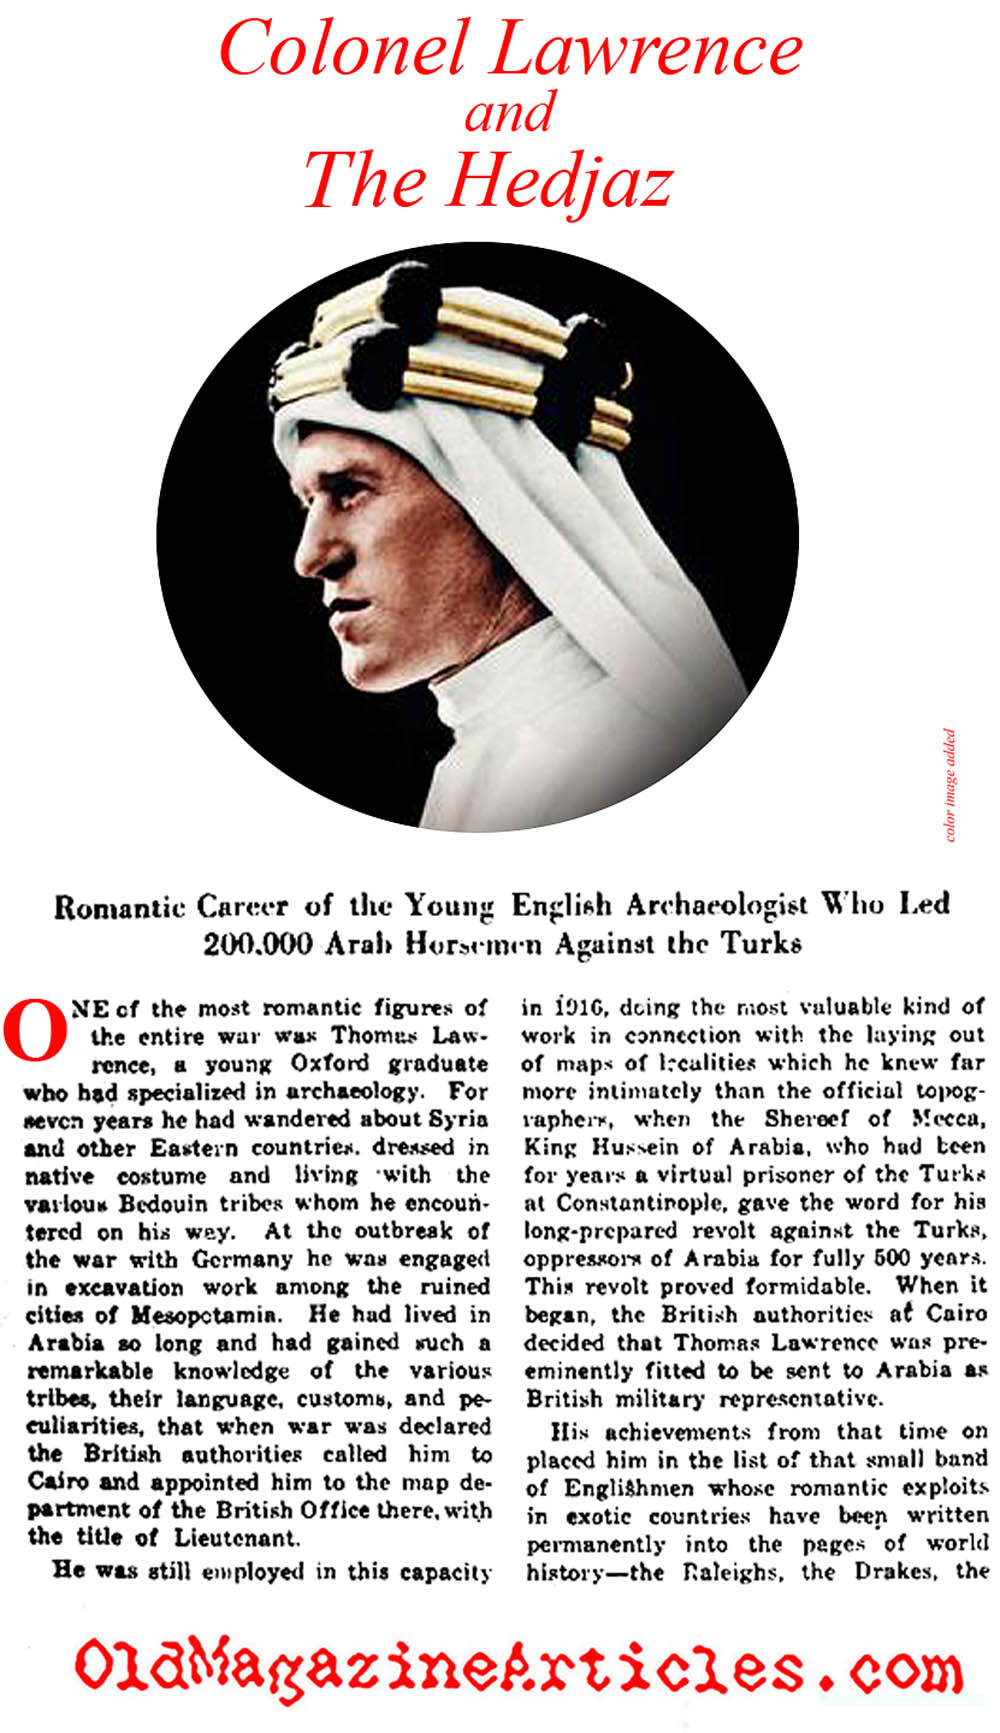 T.E. Lawrence (New York Times, 1919)